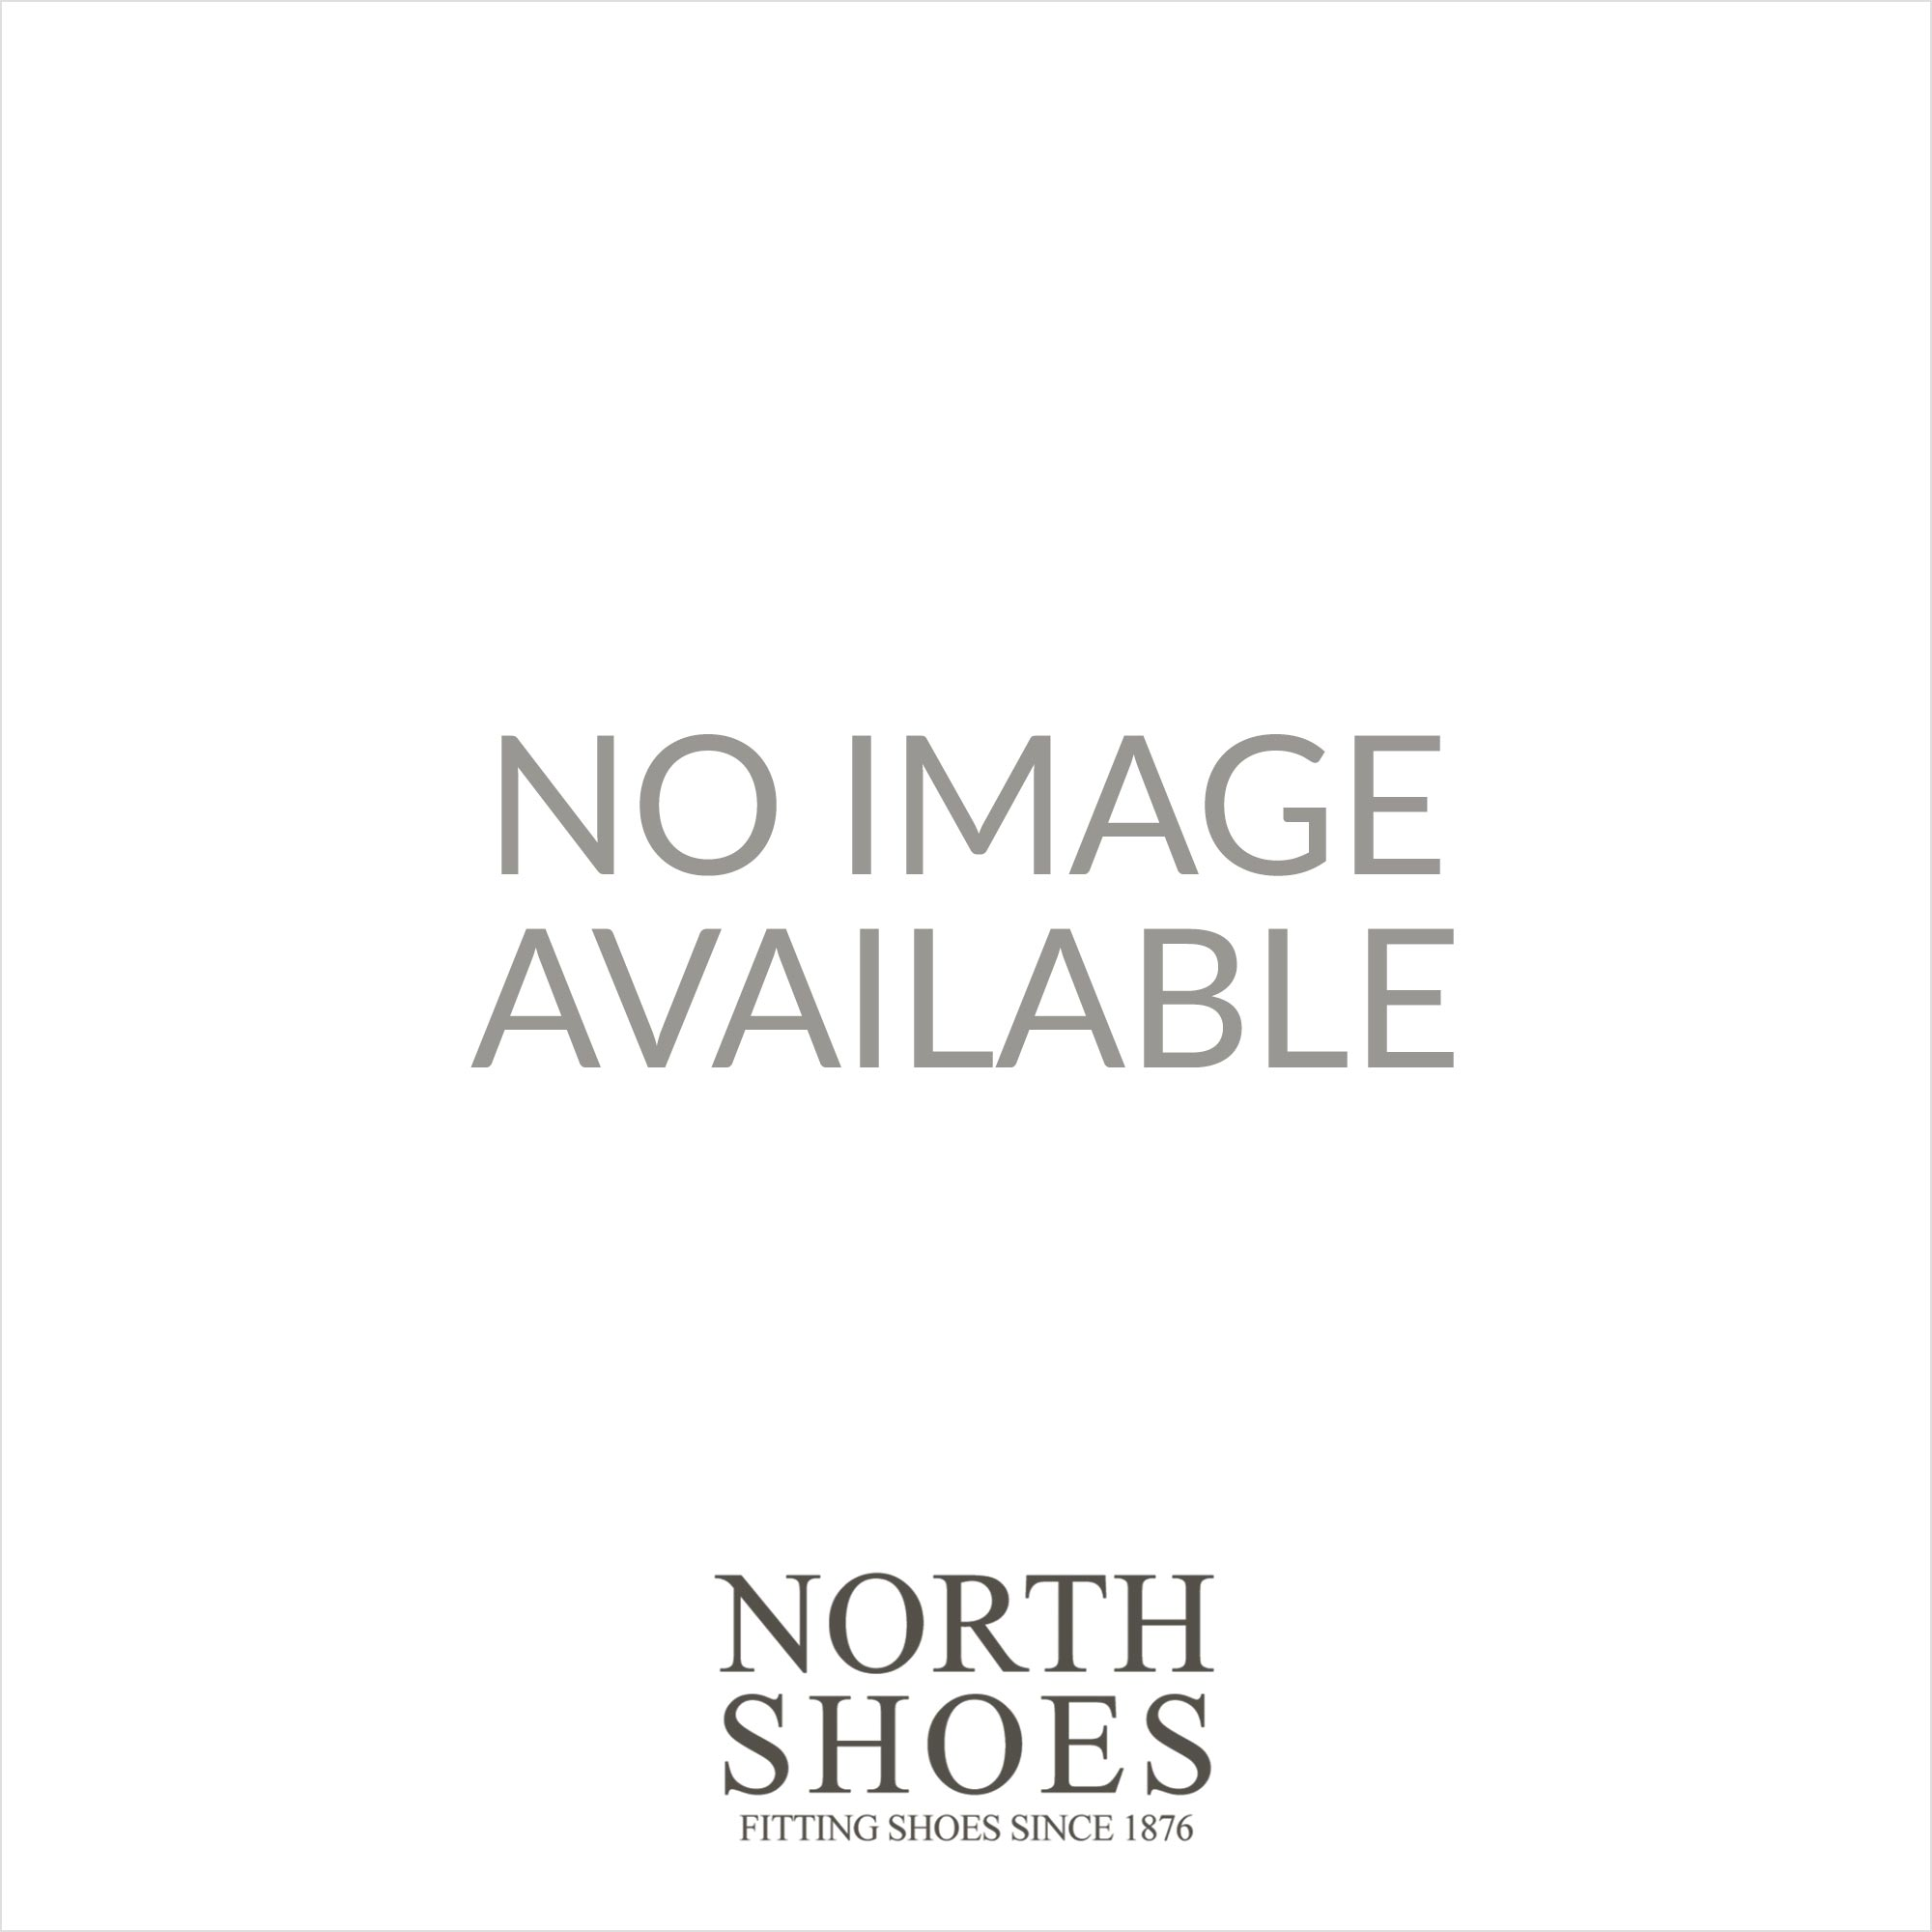 f377590a9be2 Clarks Kite Falcon Grey Suede Leather Mens Slip On Full Shoe Slipper -  Clarks from North Shoes UK